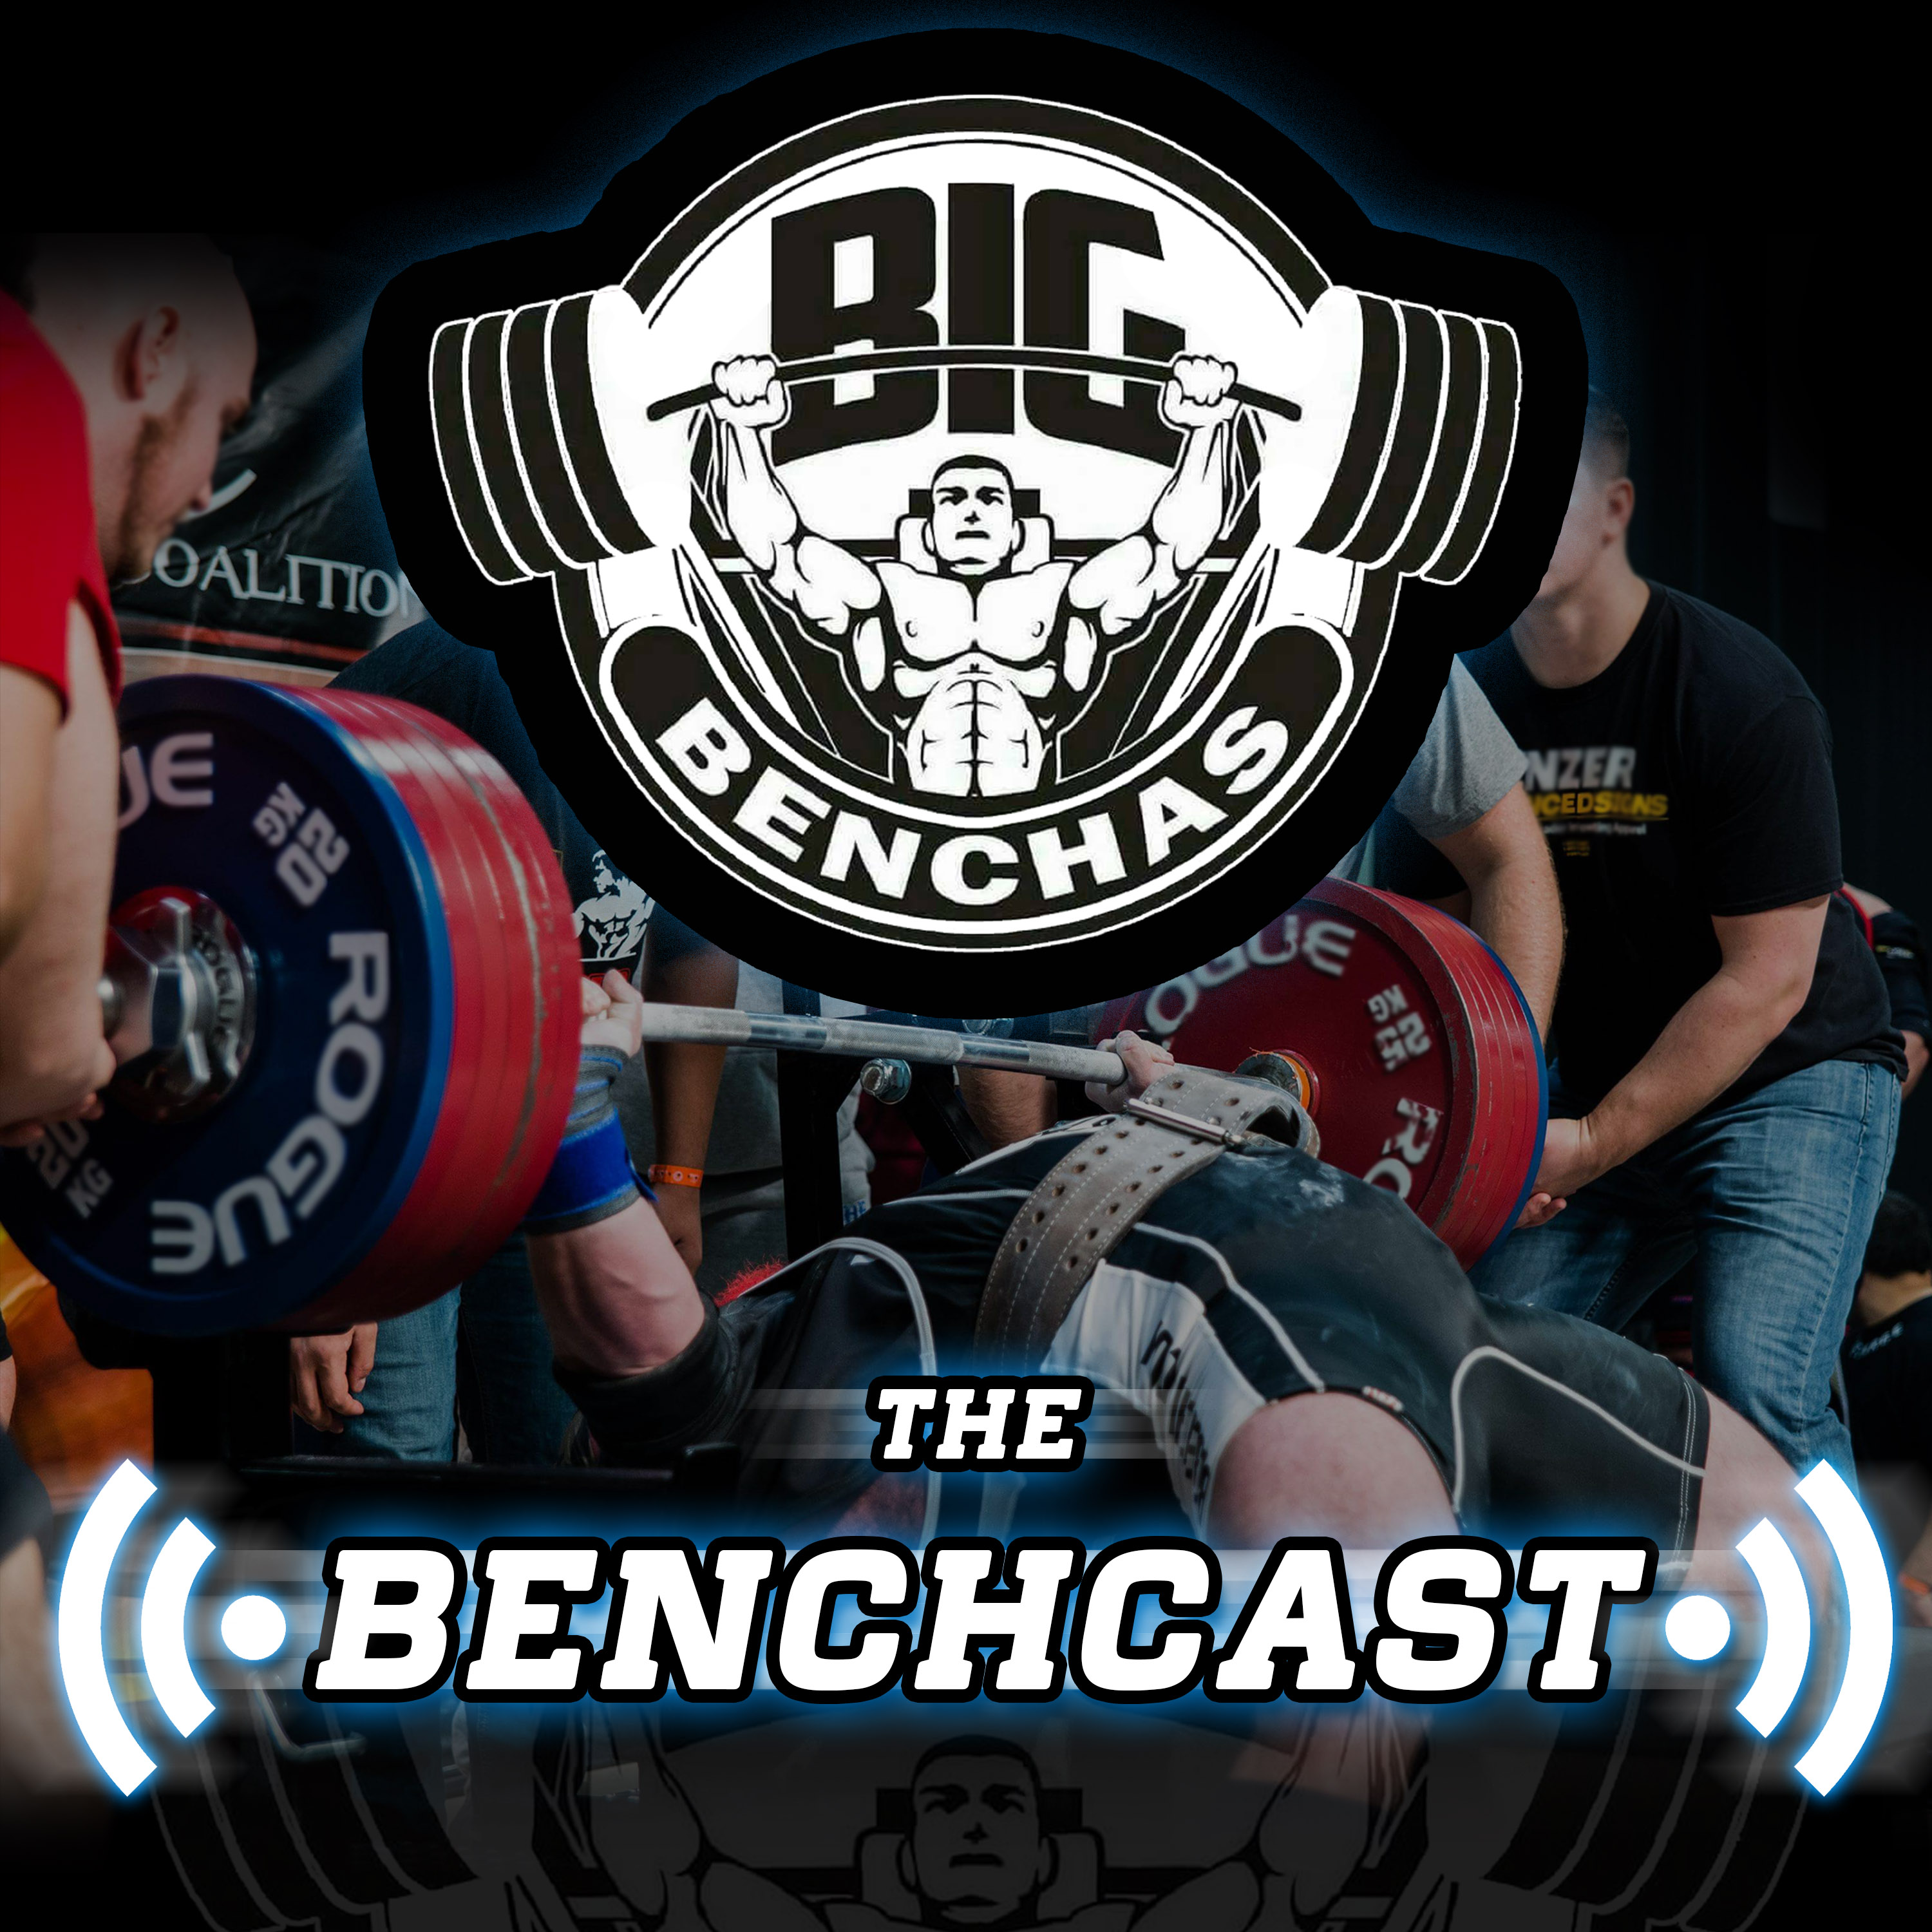 The BenchCast show art